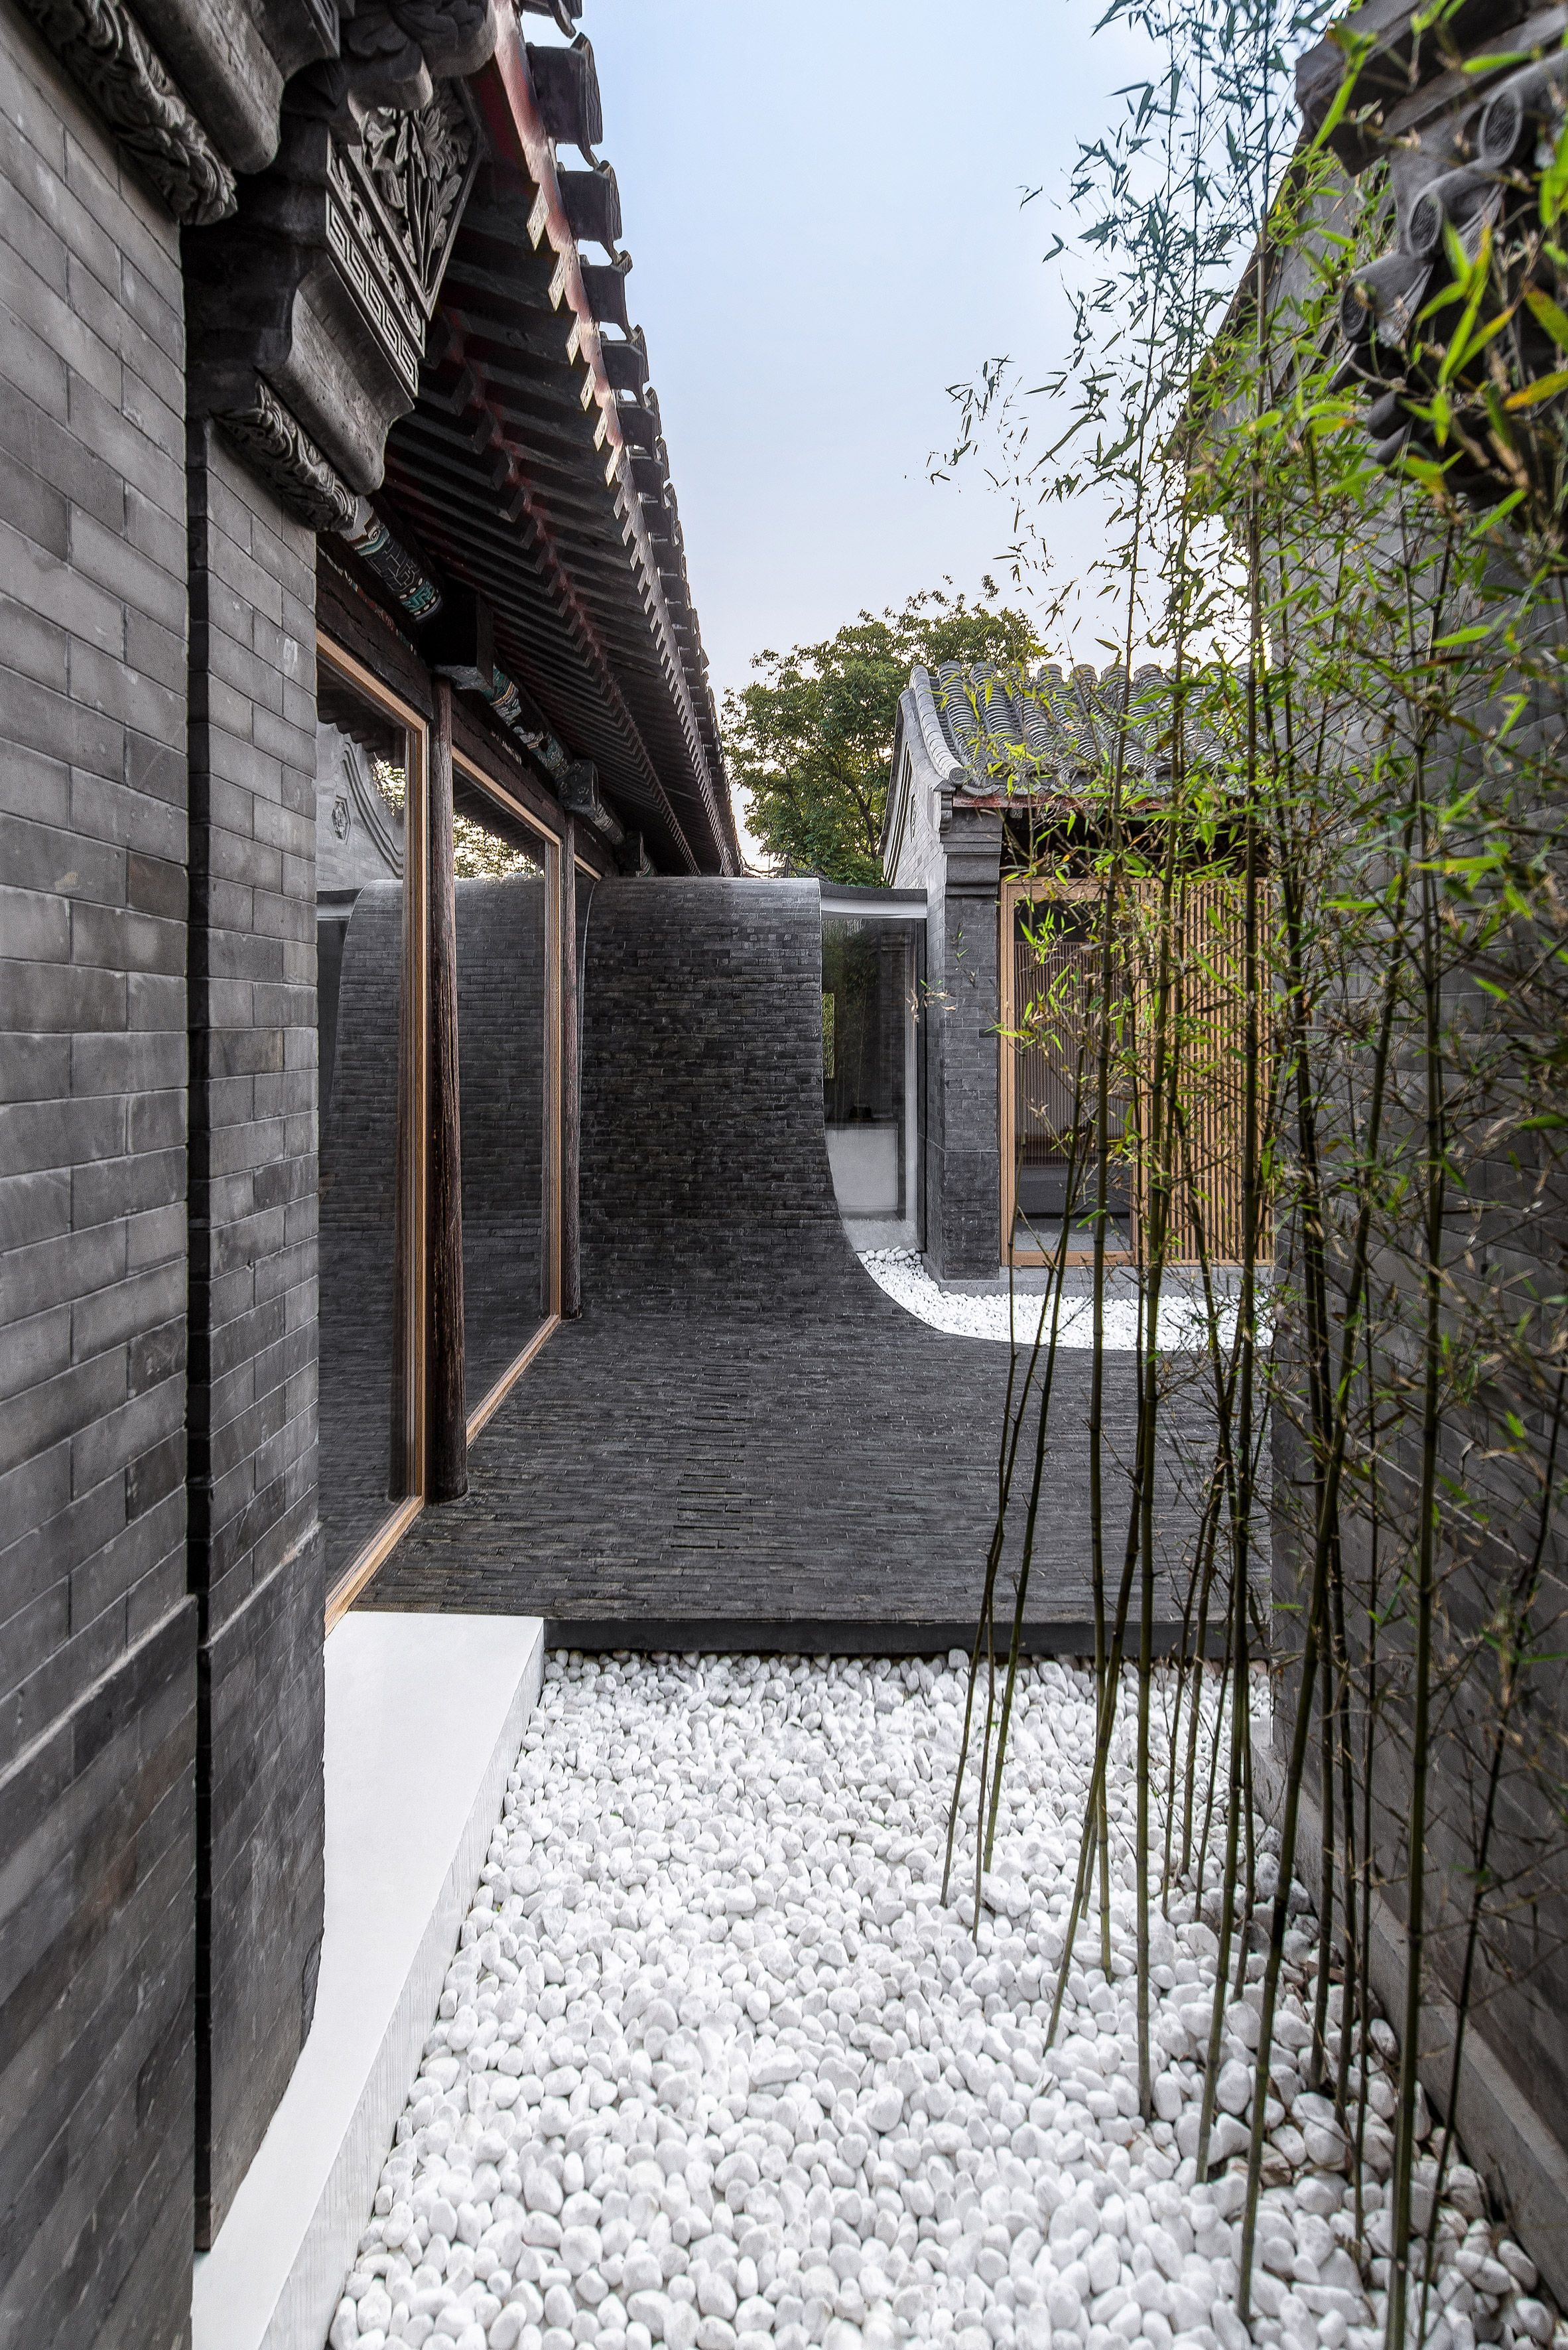 Beijing practice Arch Studio has renovated a traditional courtyard